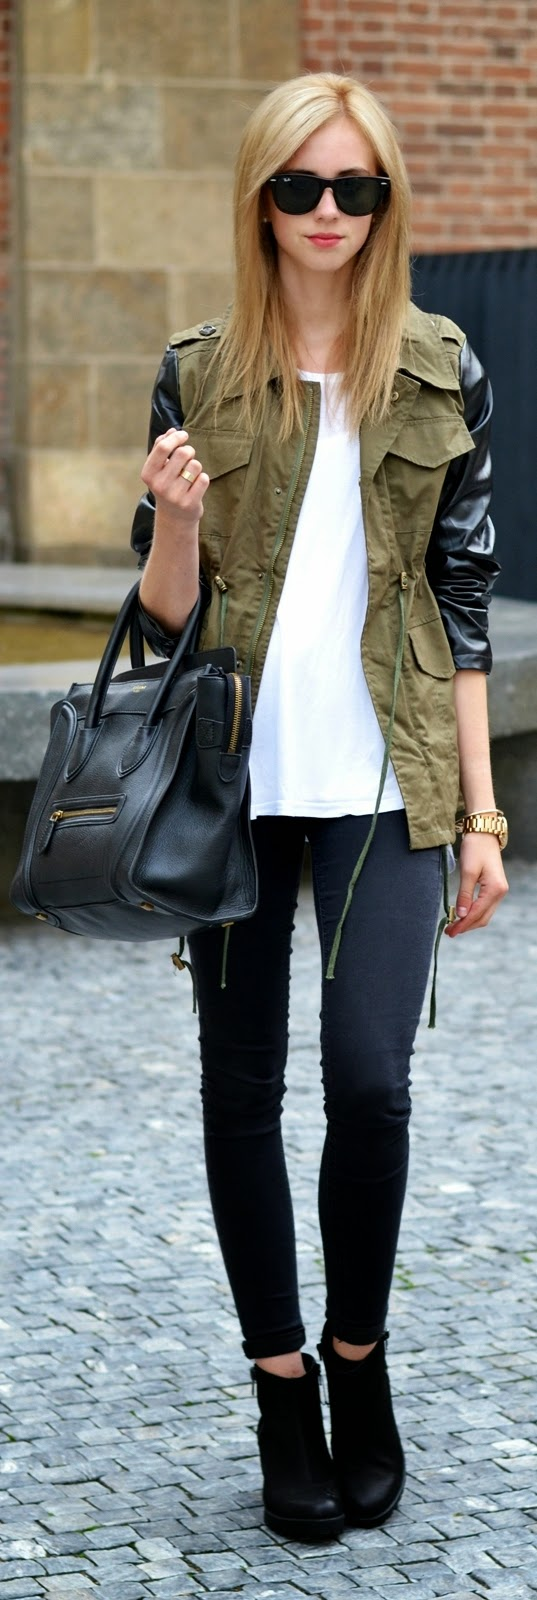 Khaki Army Print Jacket with Skinnies Jeans and Leather Handbag | Street Outfits